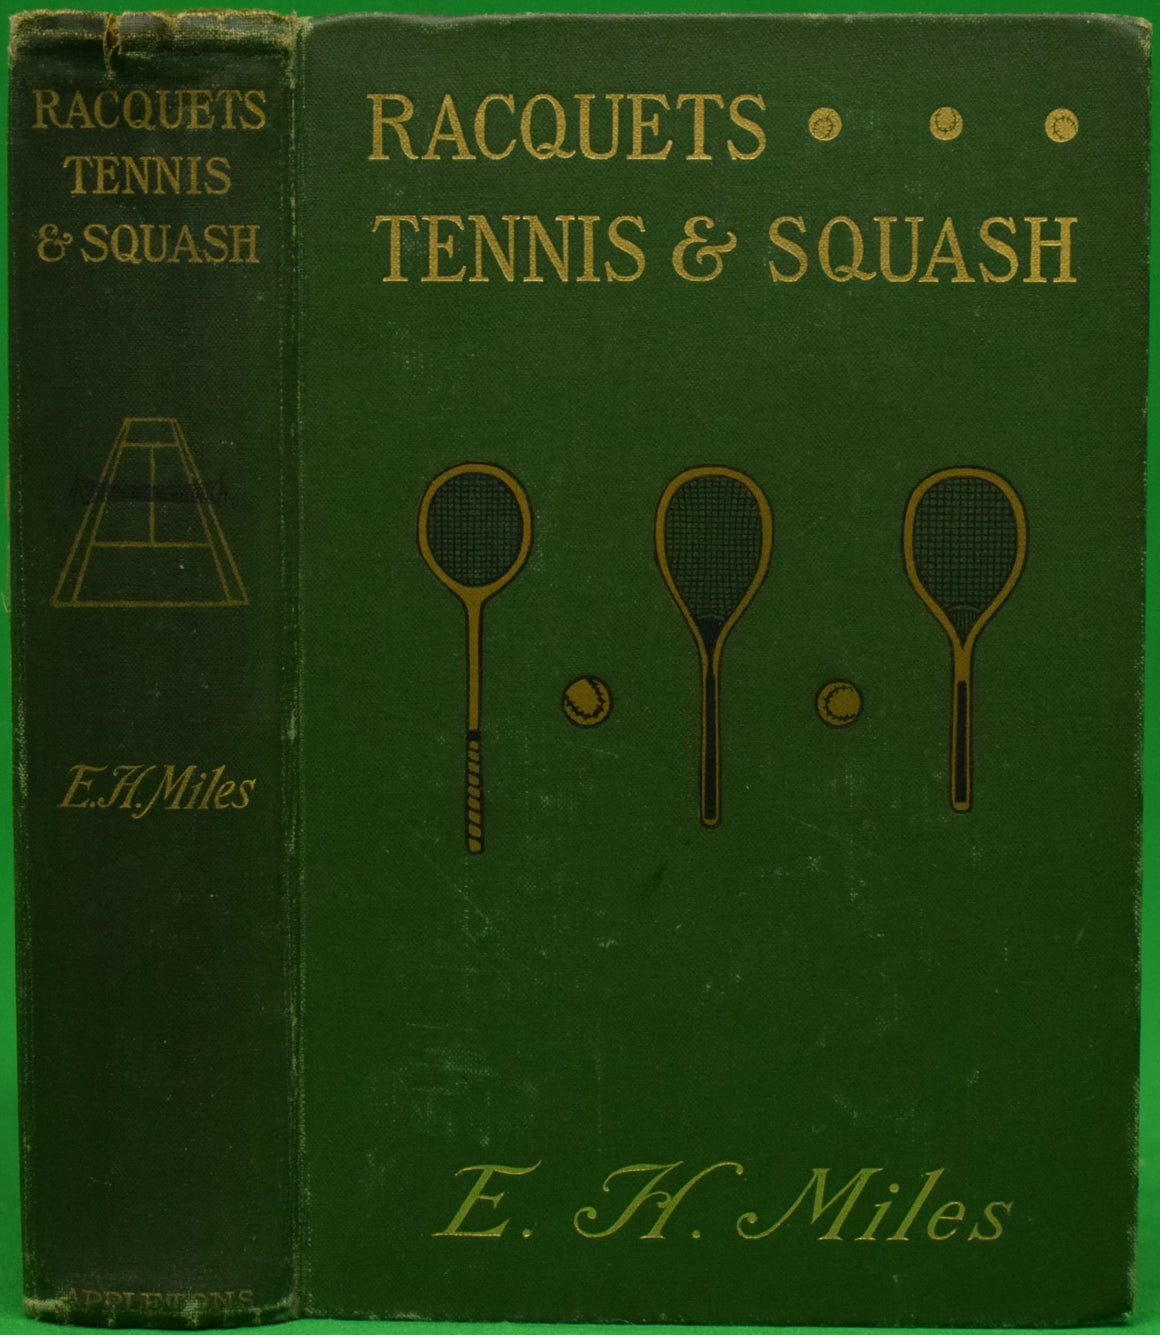 Racquets... Tennis & Squash by E. H. Miles (SOLD)